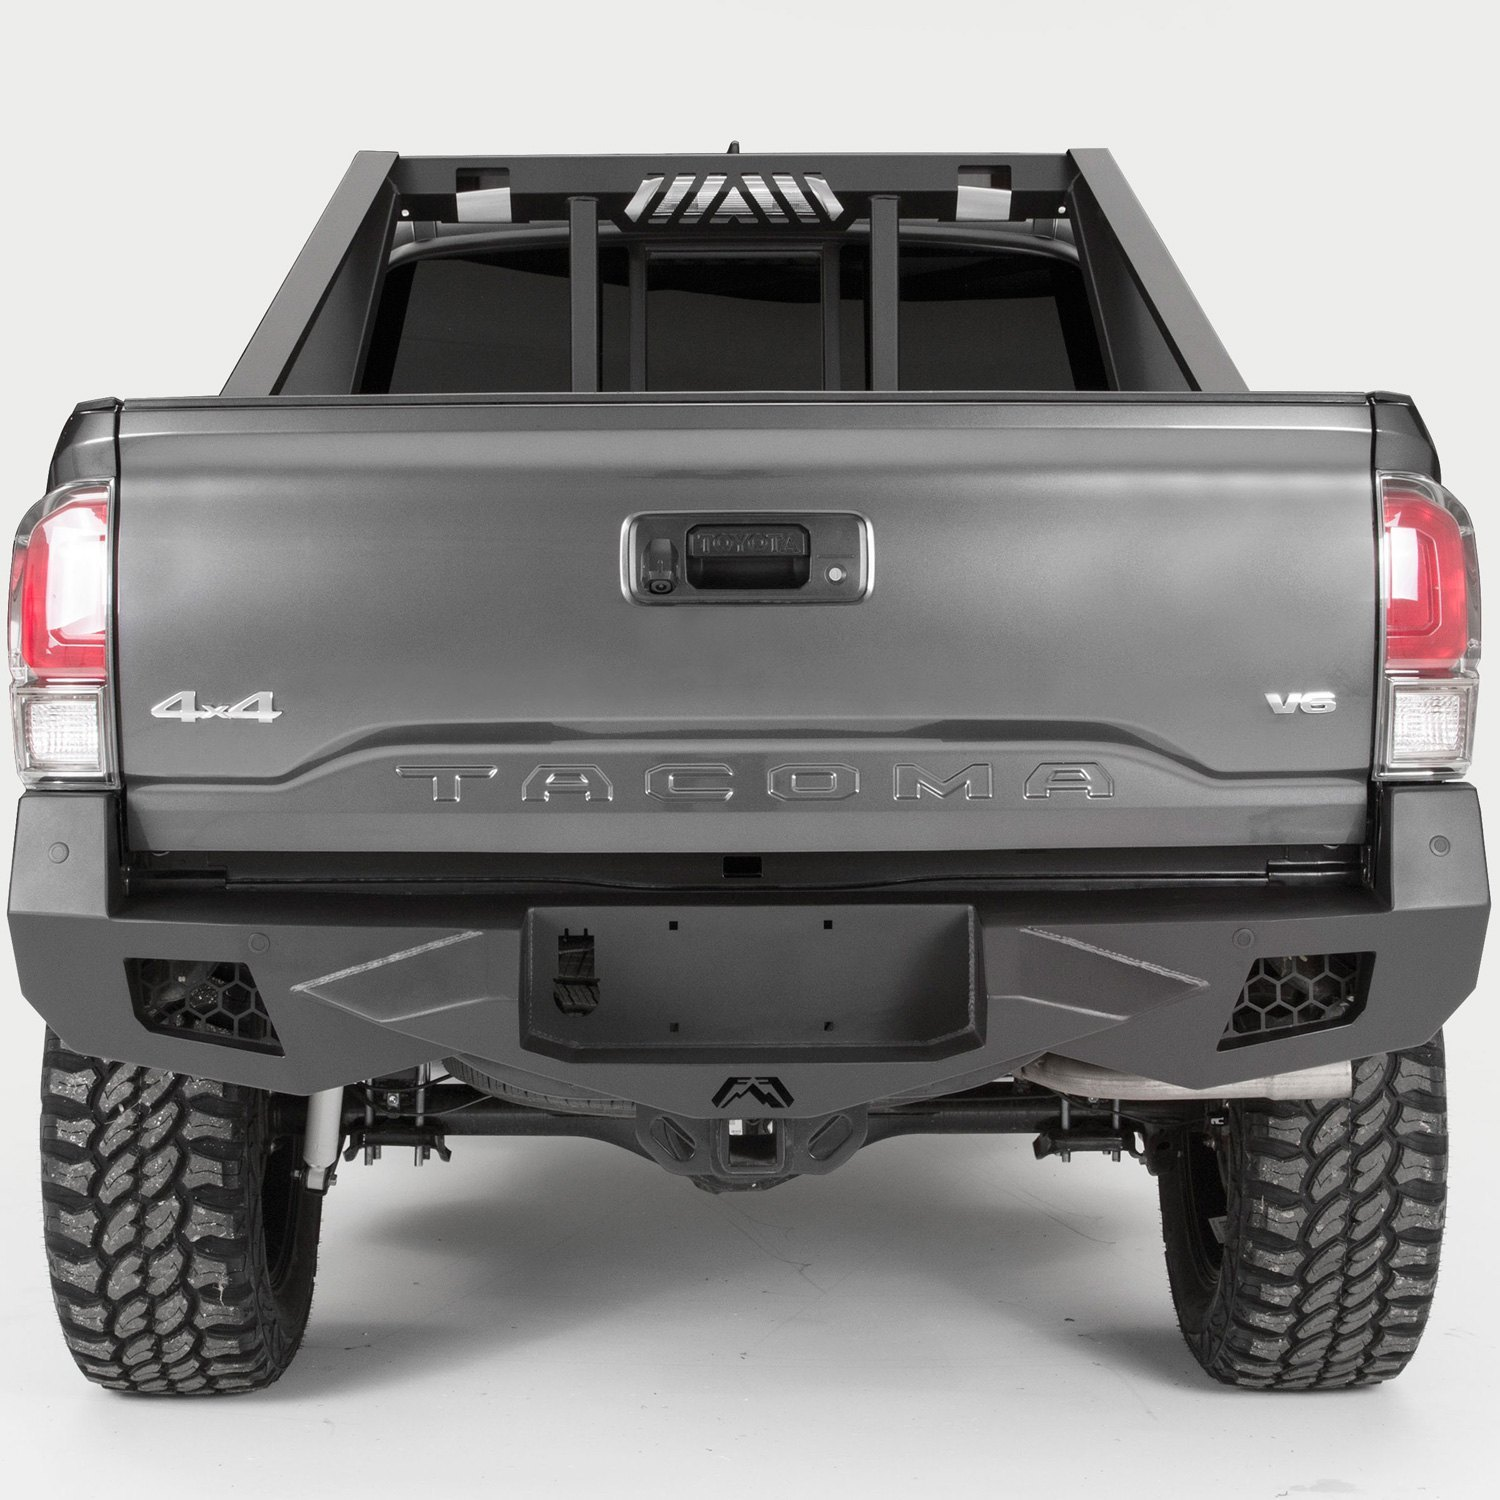 Toyota Garage Decor: Toyota Tacoma Without Rear Parking Assist